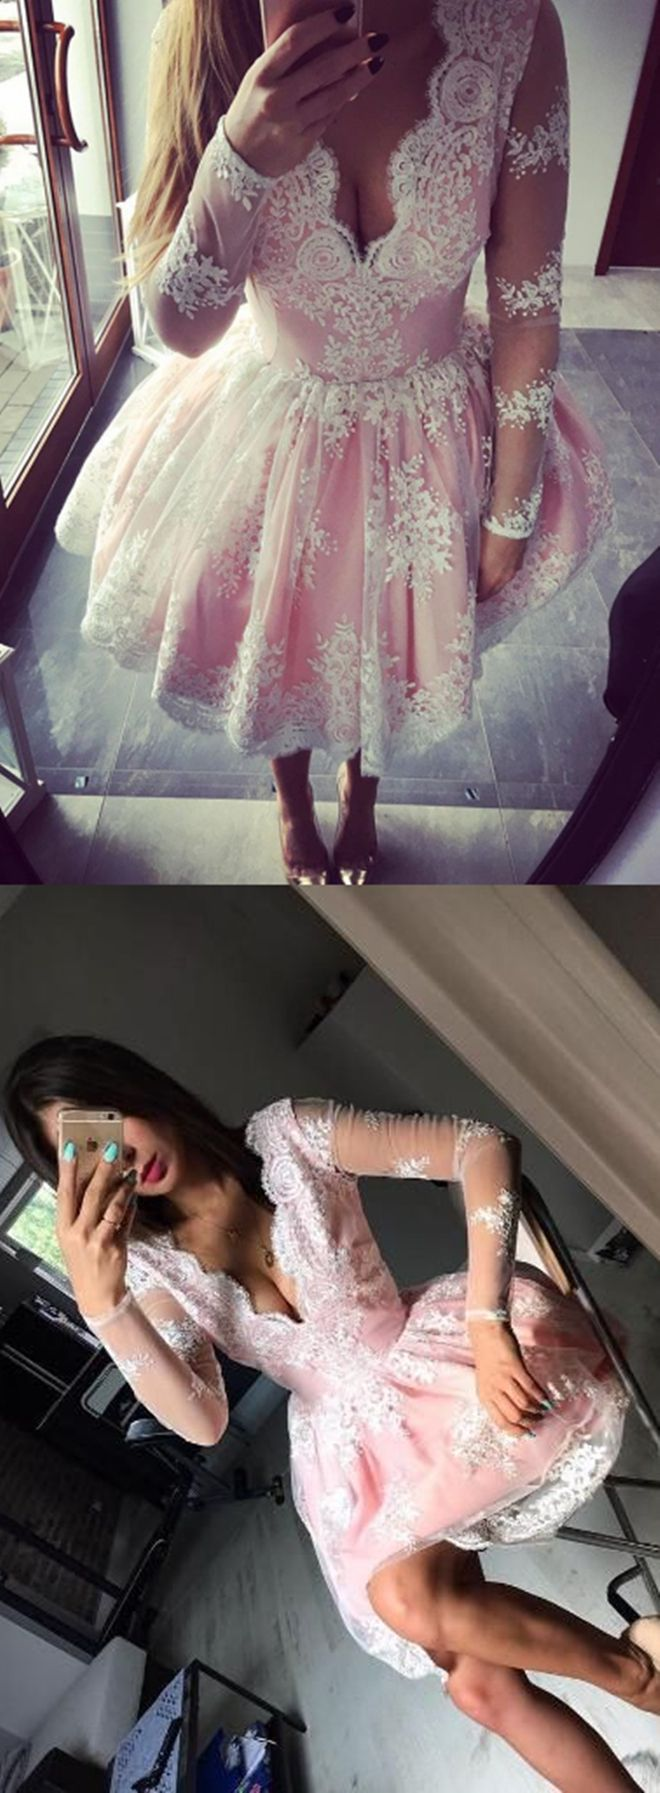 2017 homecoming dresses,lace homecoming dresses,pink homecoming dresses,simple homecoming dresses @simpledress2480